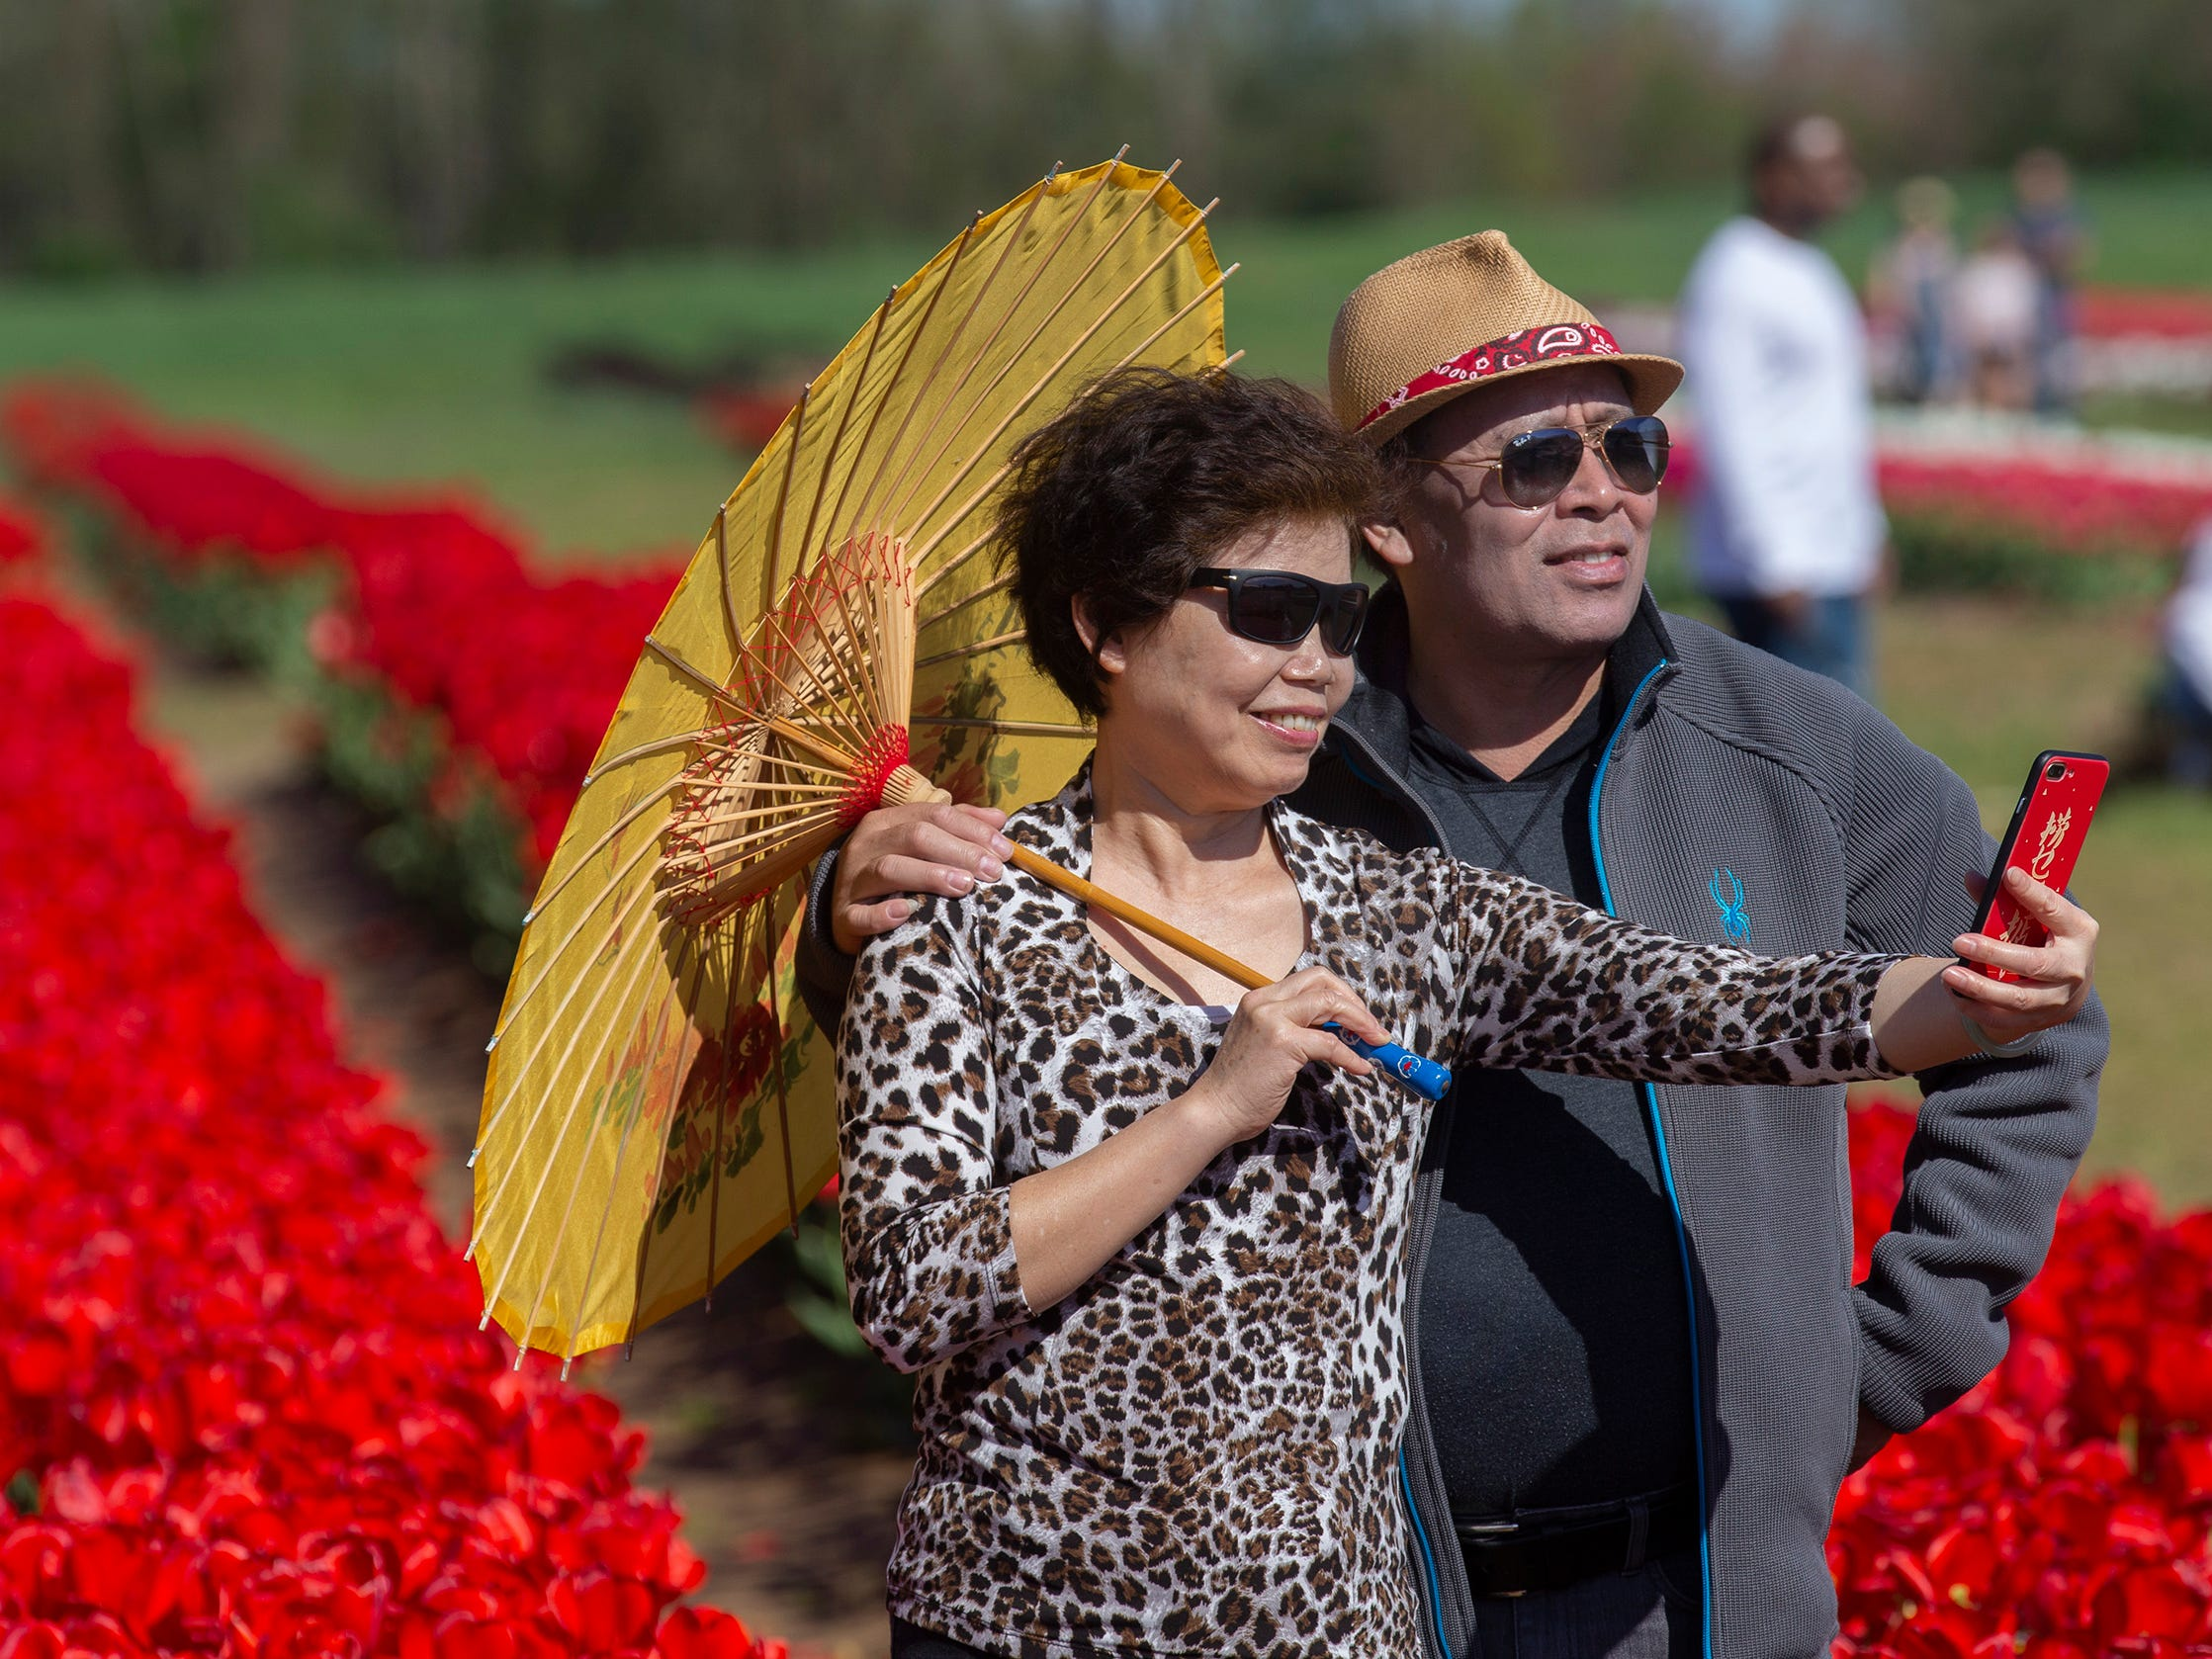 New Yorkers  take photos at the Annual Tulip Festival at Holland Ridge Farms in Cream Ridge Section of Upper Freehold Township. People came from all around to look at the flowers, take pictures of the flowers, and take pictures of themselves with the flowers.